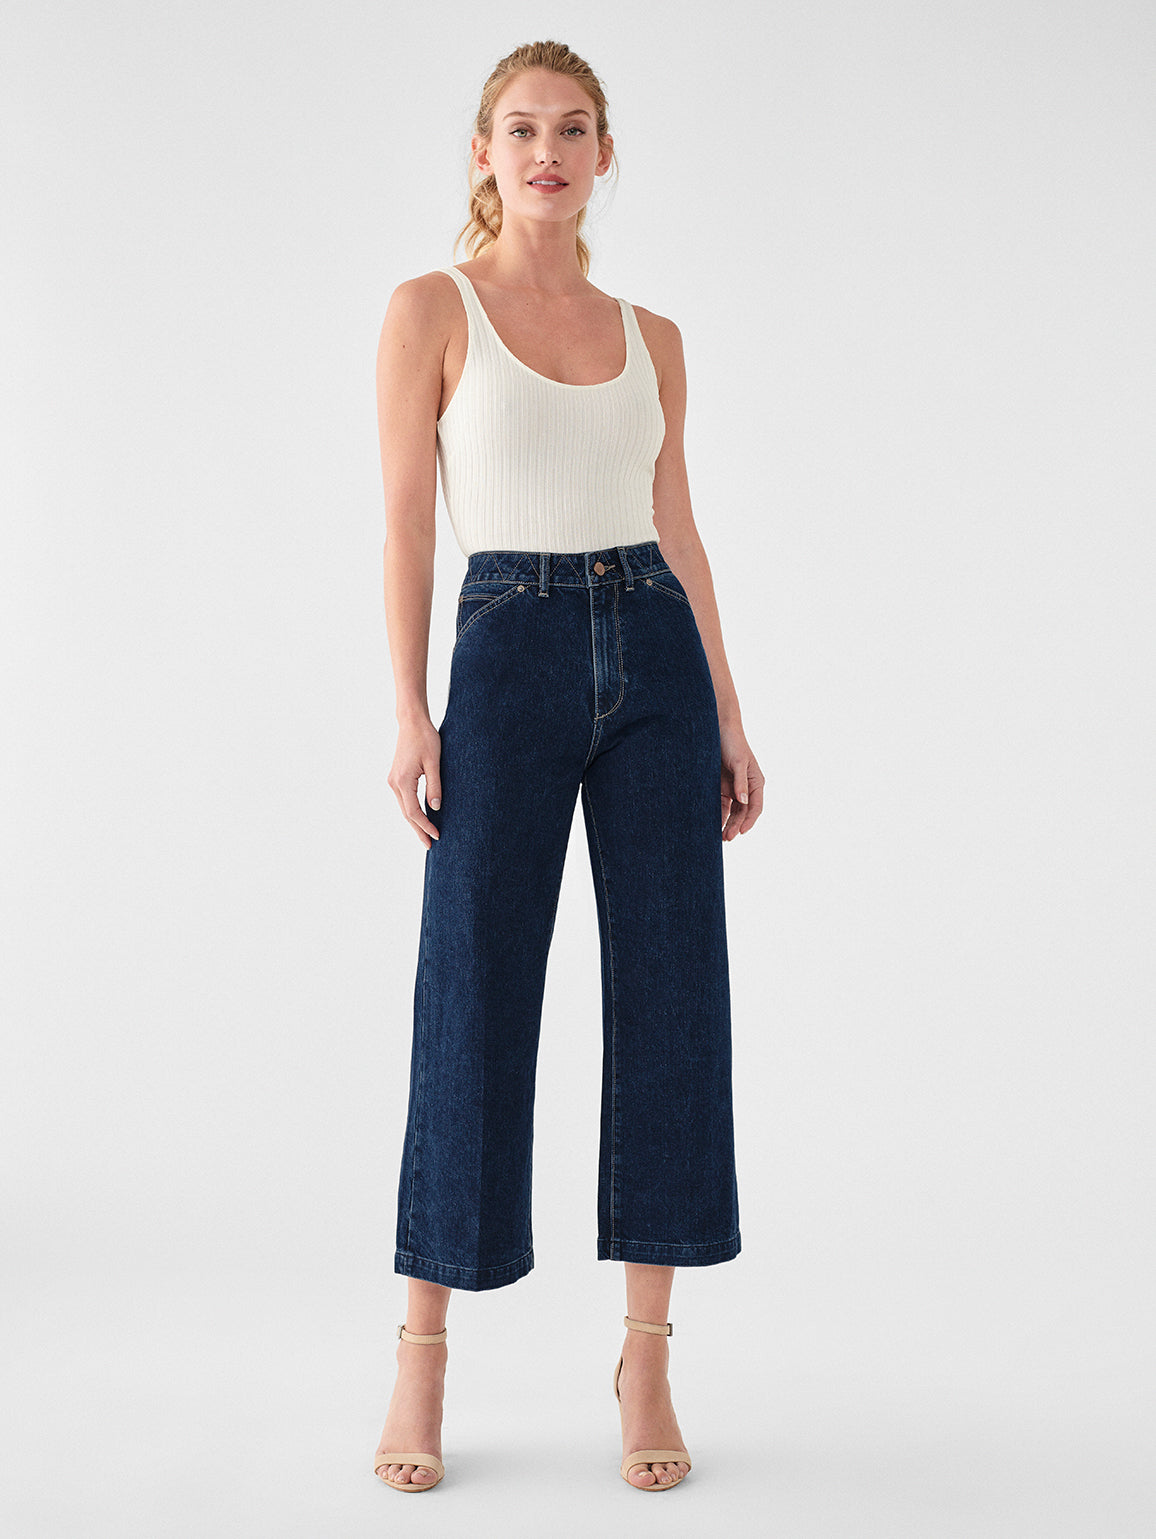 Hepburn High Rise Wide Leg | Flatland